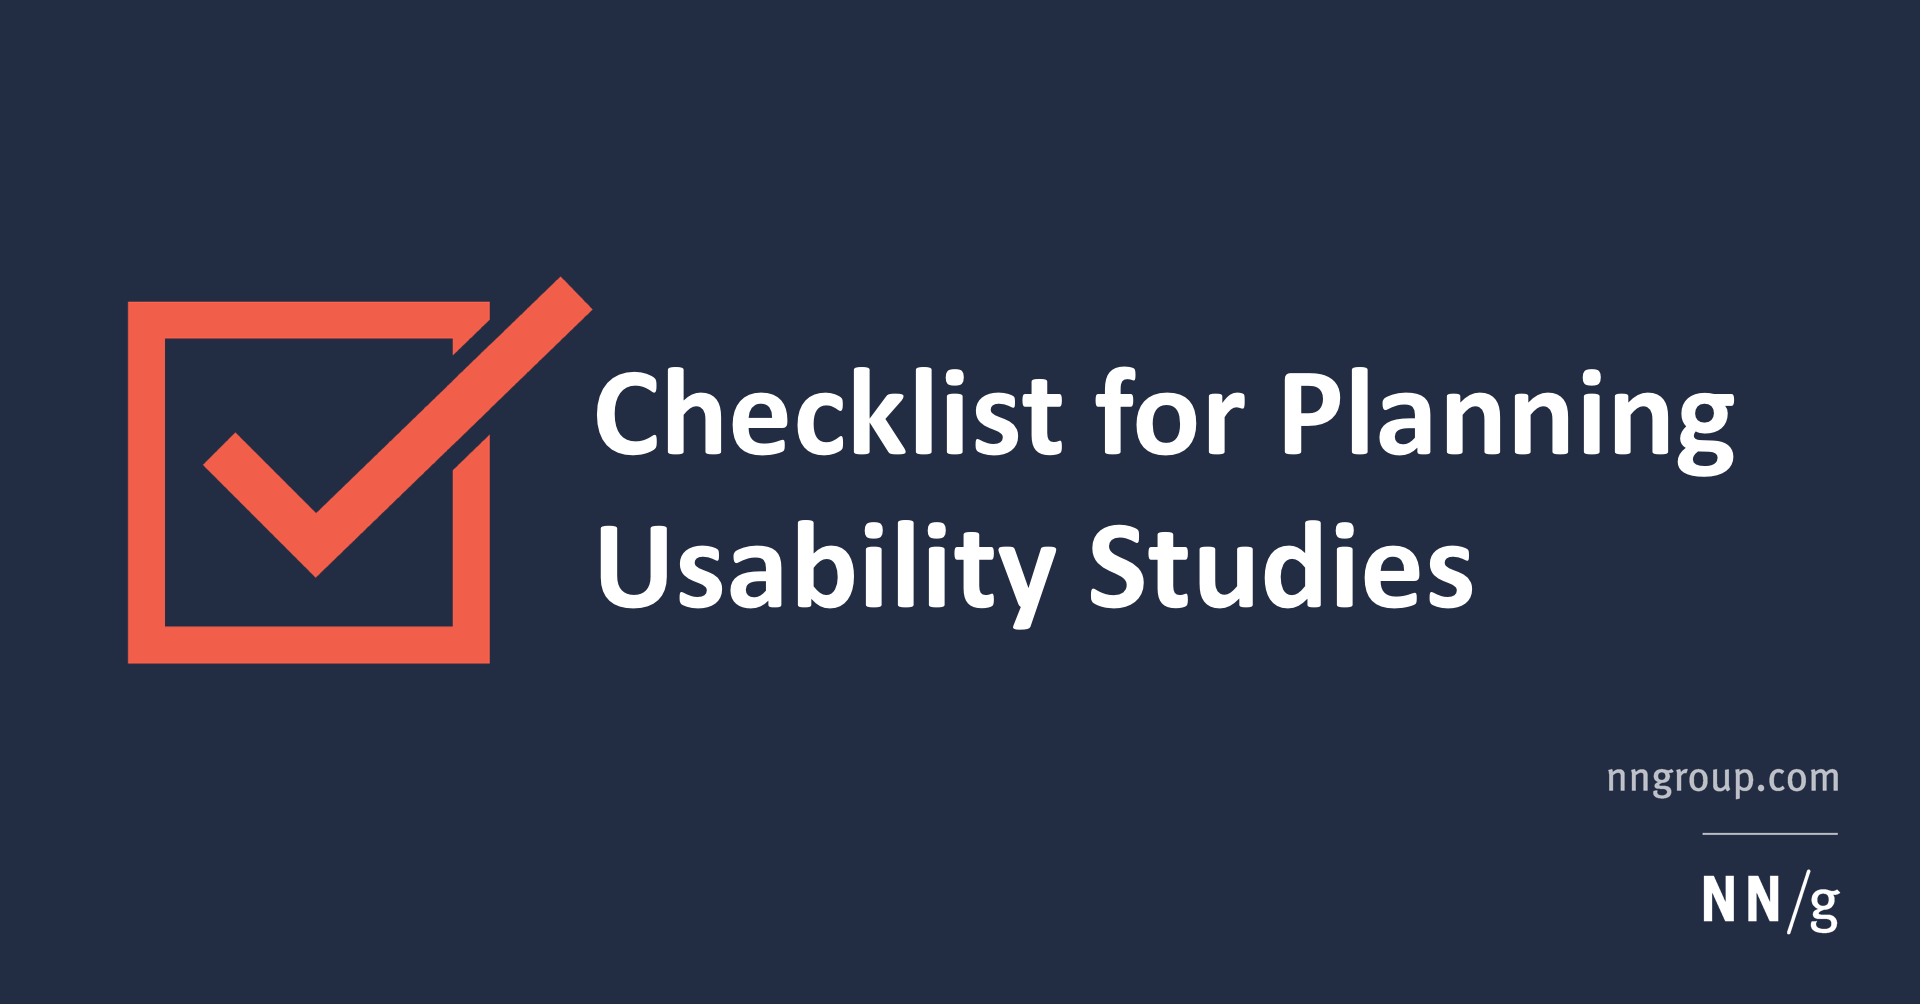 Checklist for Planning Usability Studies